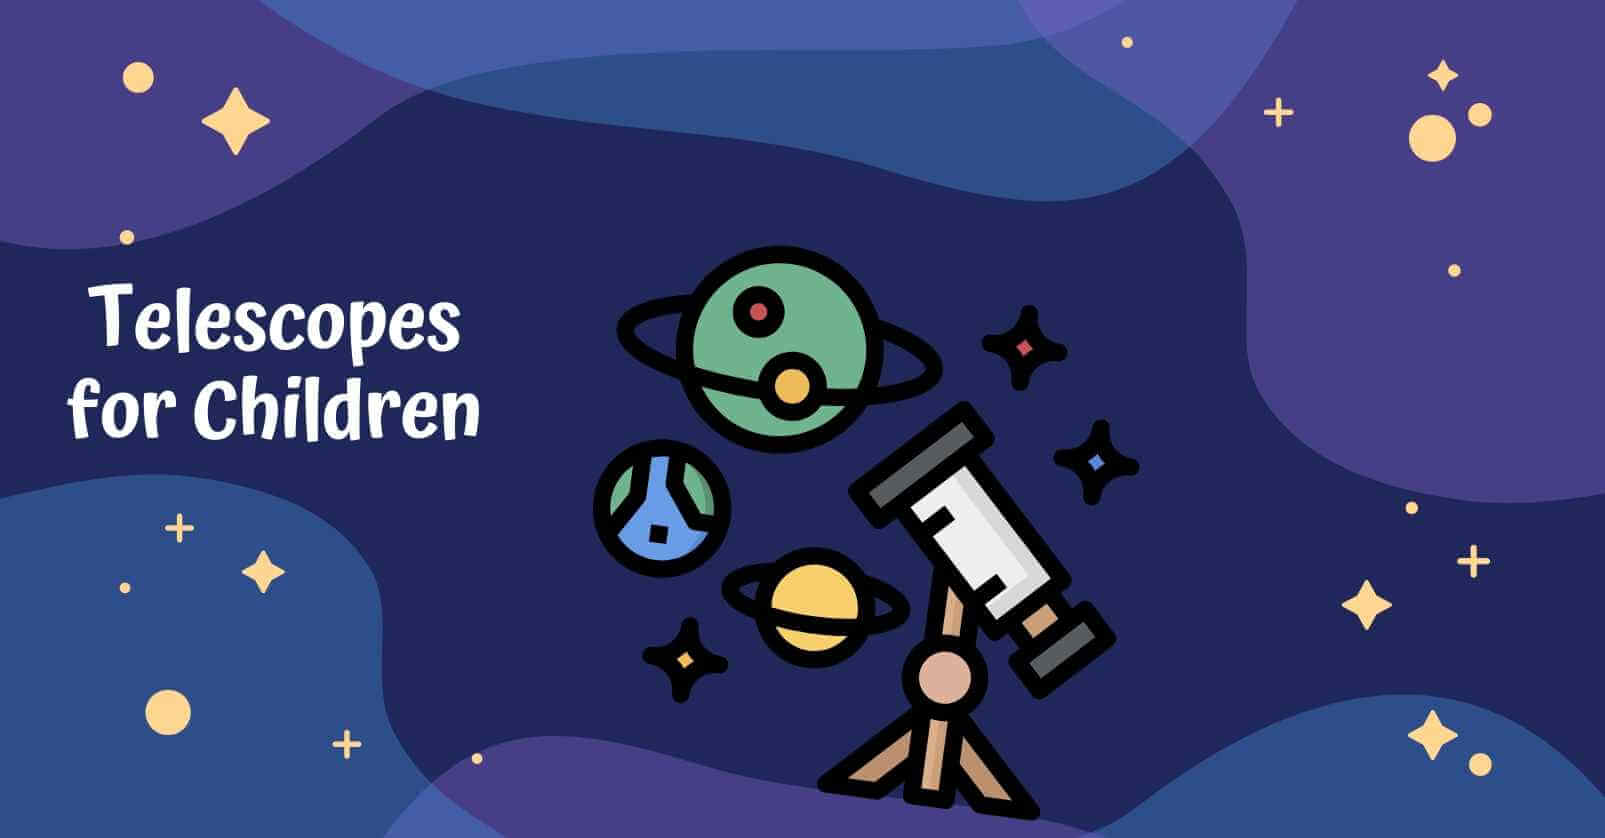 Telescopes for children, top tips and advice